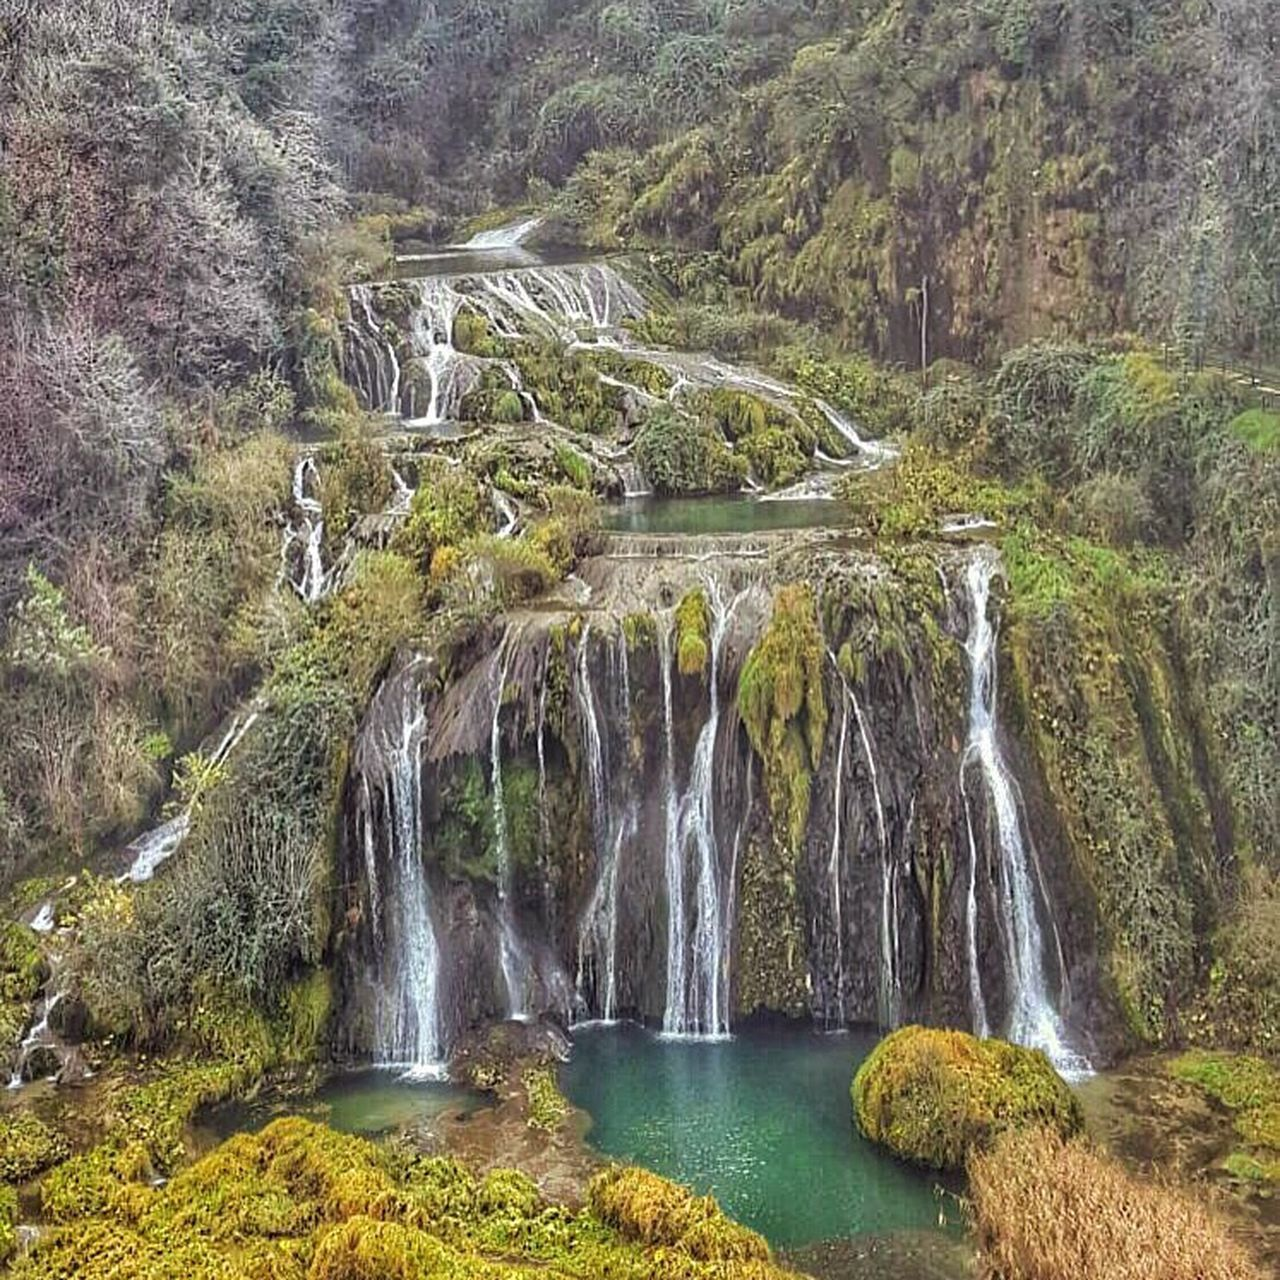 Cascata_delle_Marmore Cascata Waterfall Water Nature EyeEm Best Shots EyeEm Nature Lover EyeEm Gallery EyeEmBestPics River Terni Fiume Panoramic Photography Nature Waterfalls Landscape Beauty In Nature No People Beauty Eye4photography  EyeEm EyeEm Best Shots - Nature EyeEmBestEdits